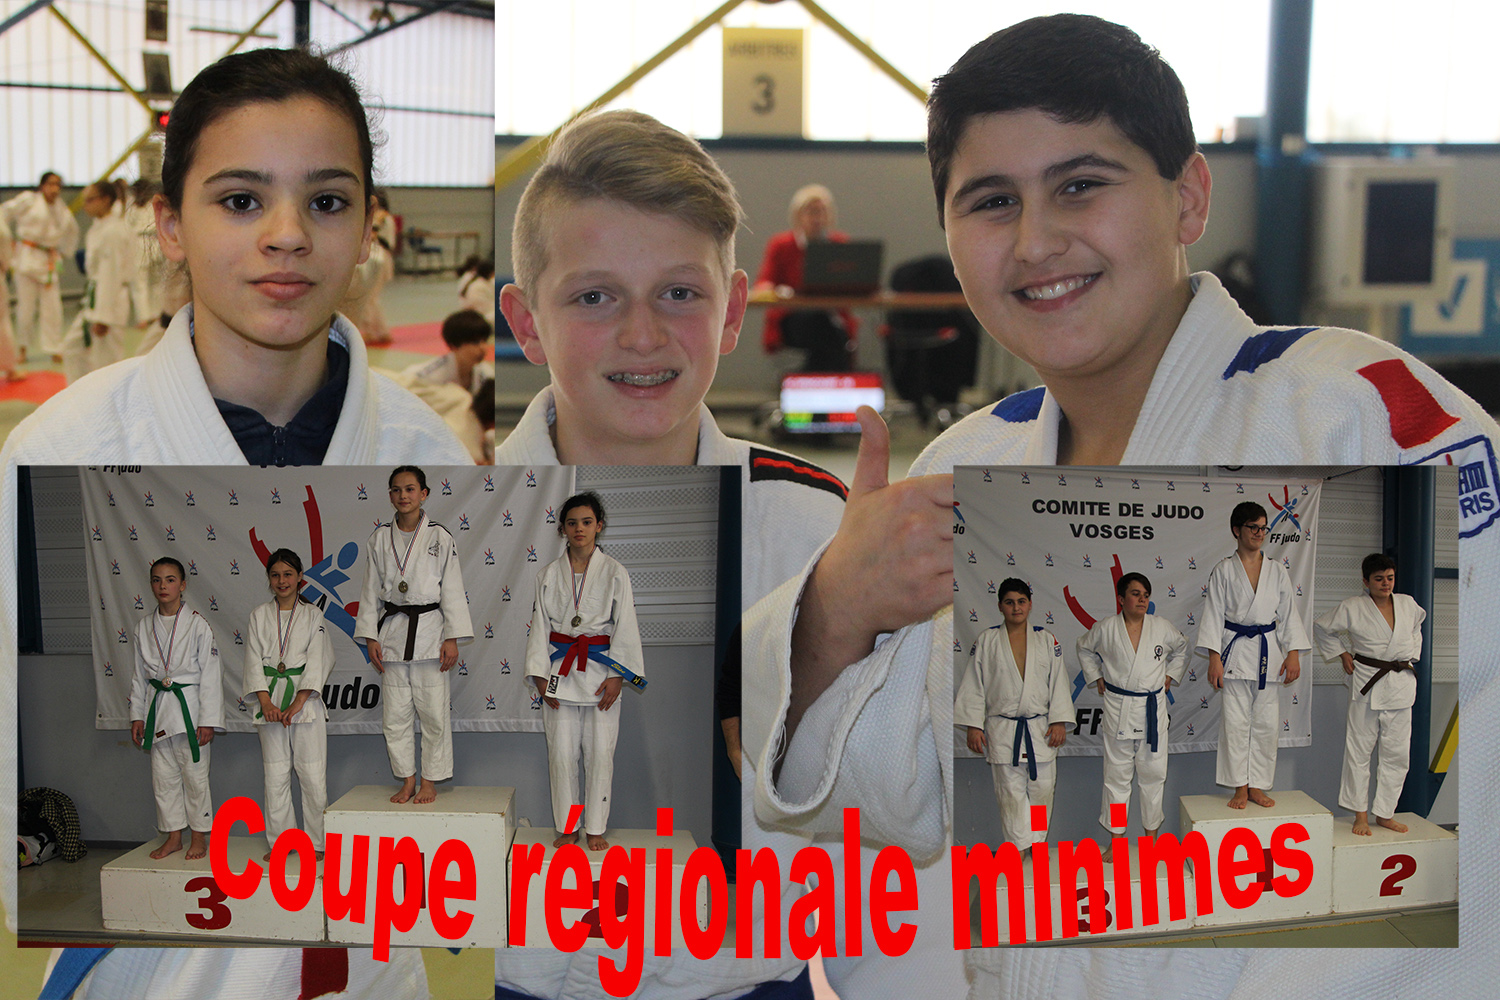 coupe rgionale minimes2